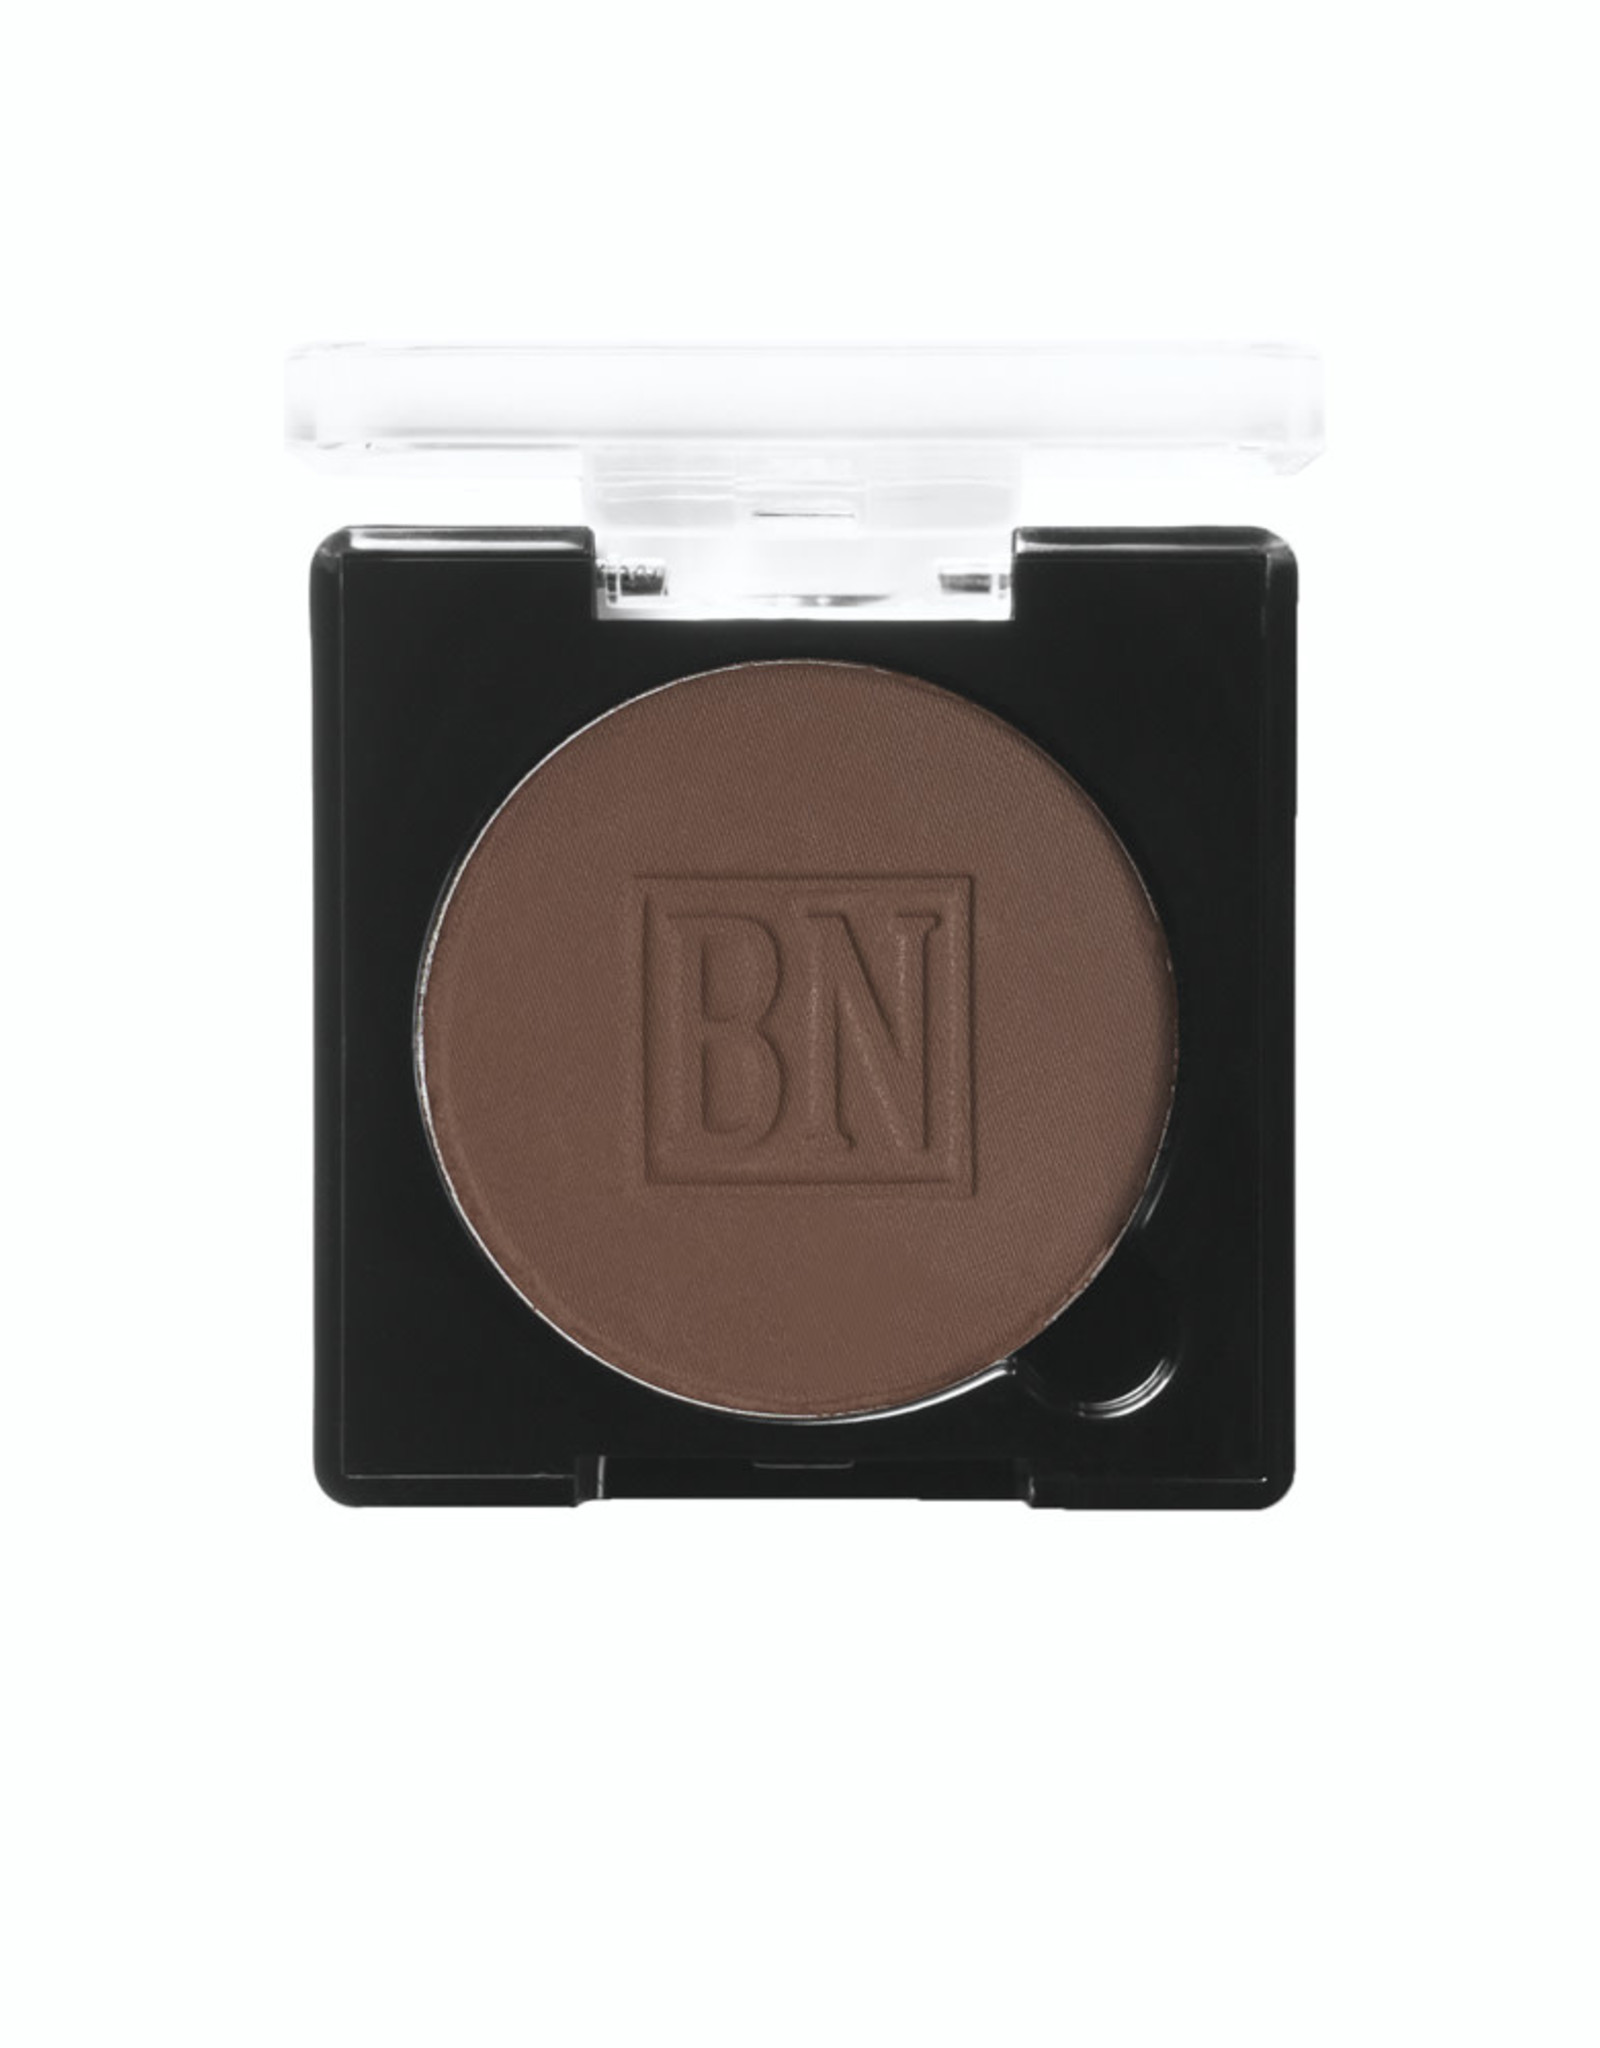 Ben Nye EYE SHADOW, MINK STOLE, .12 OZ